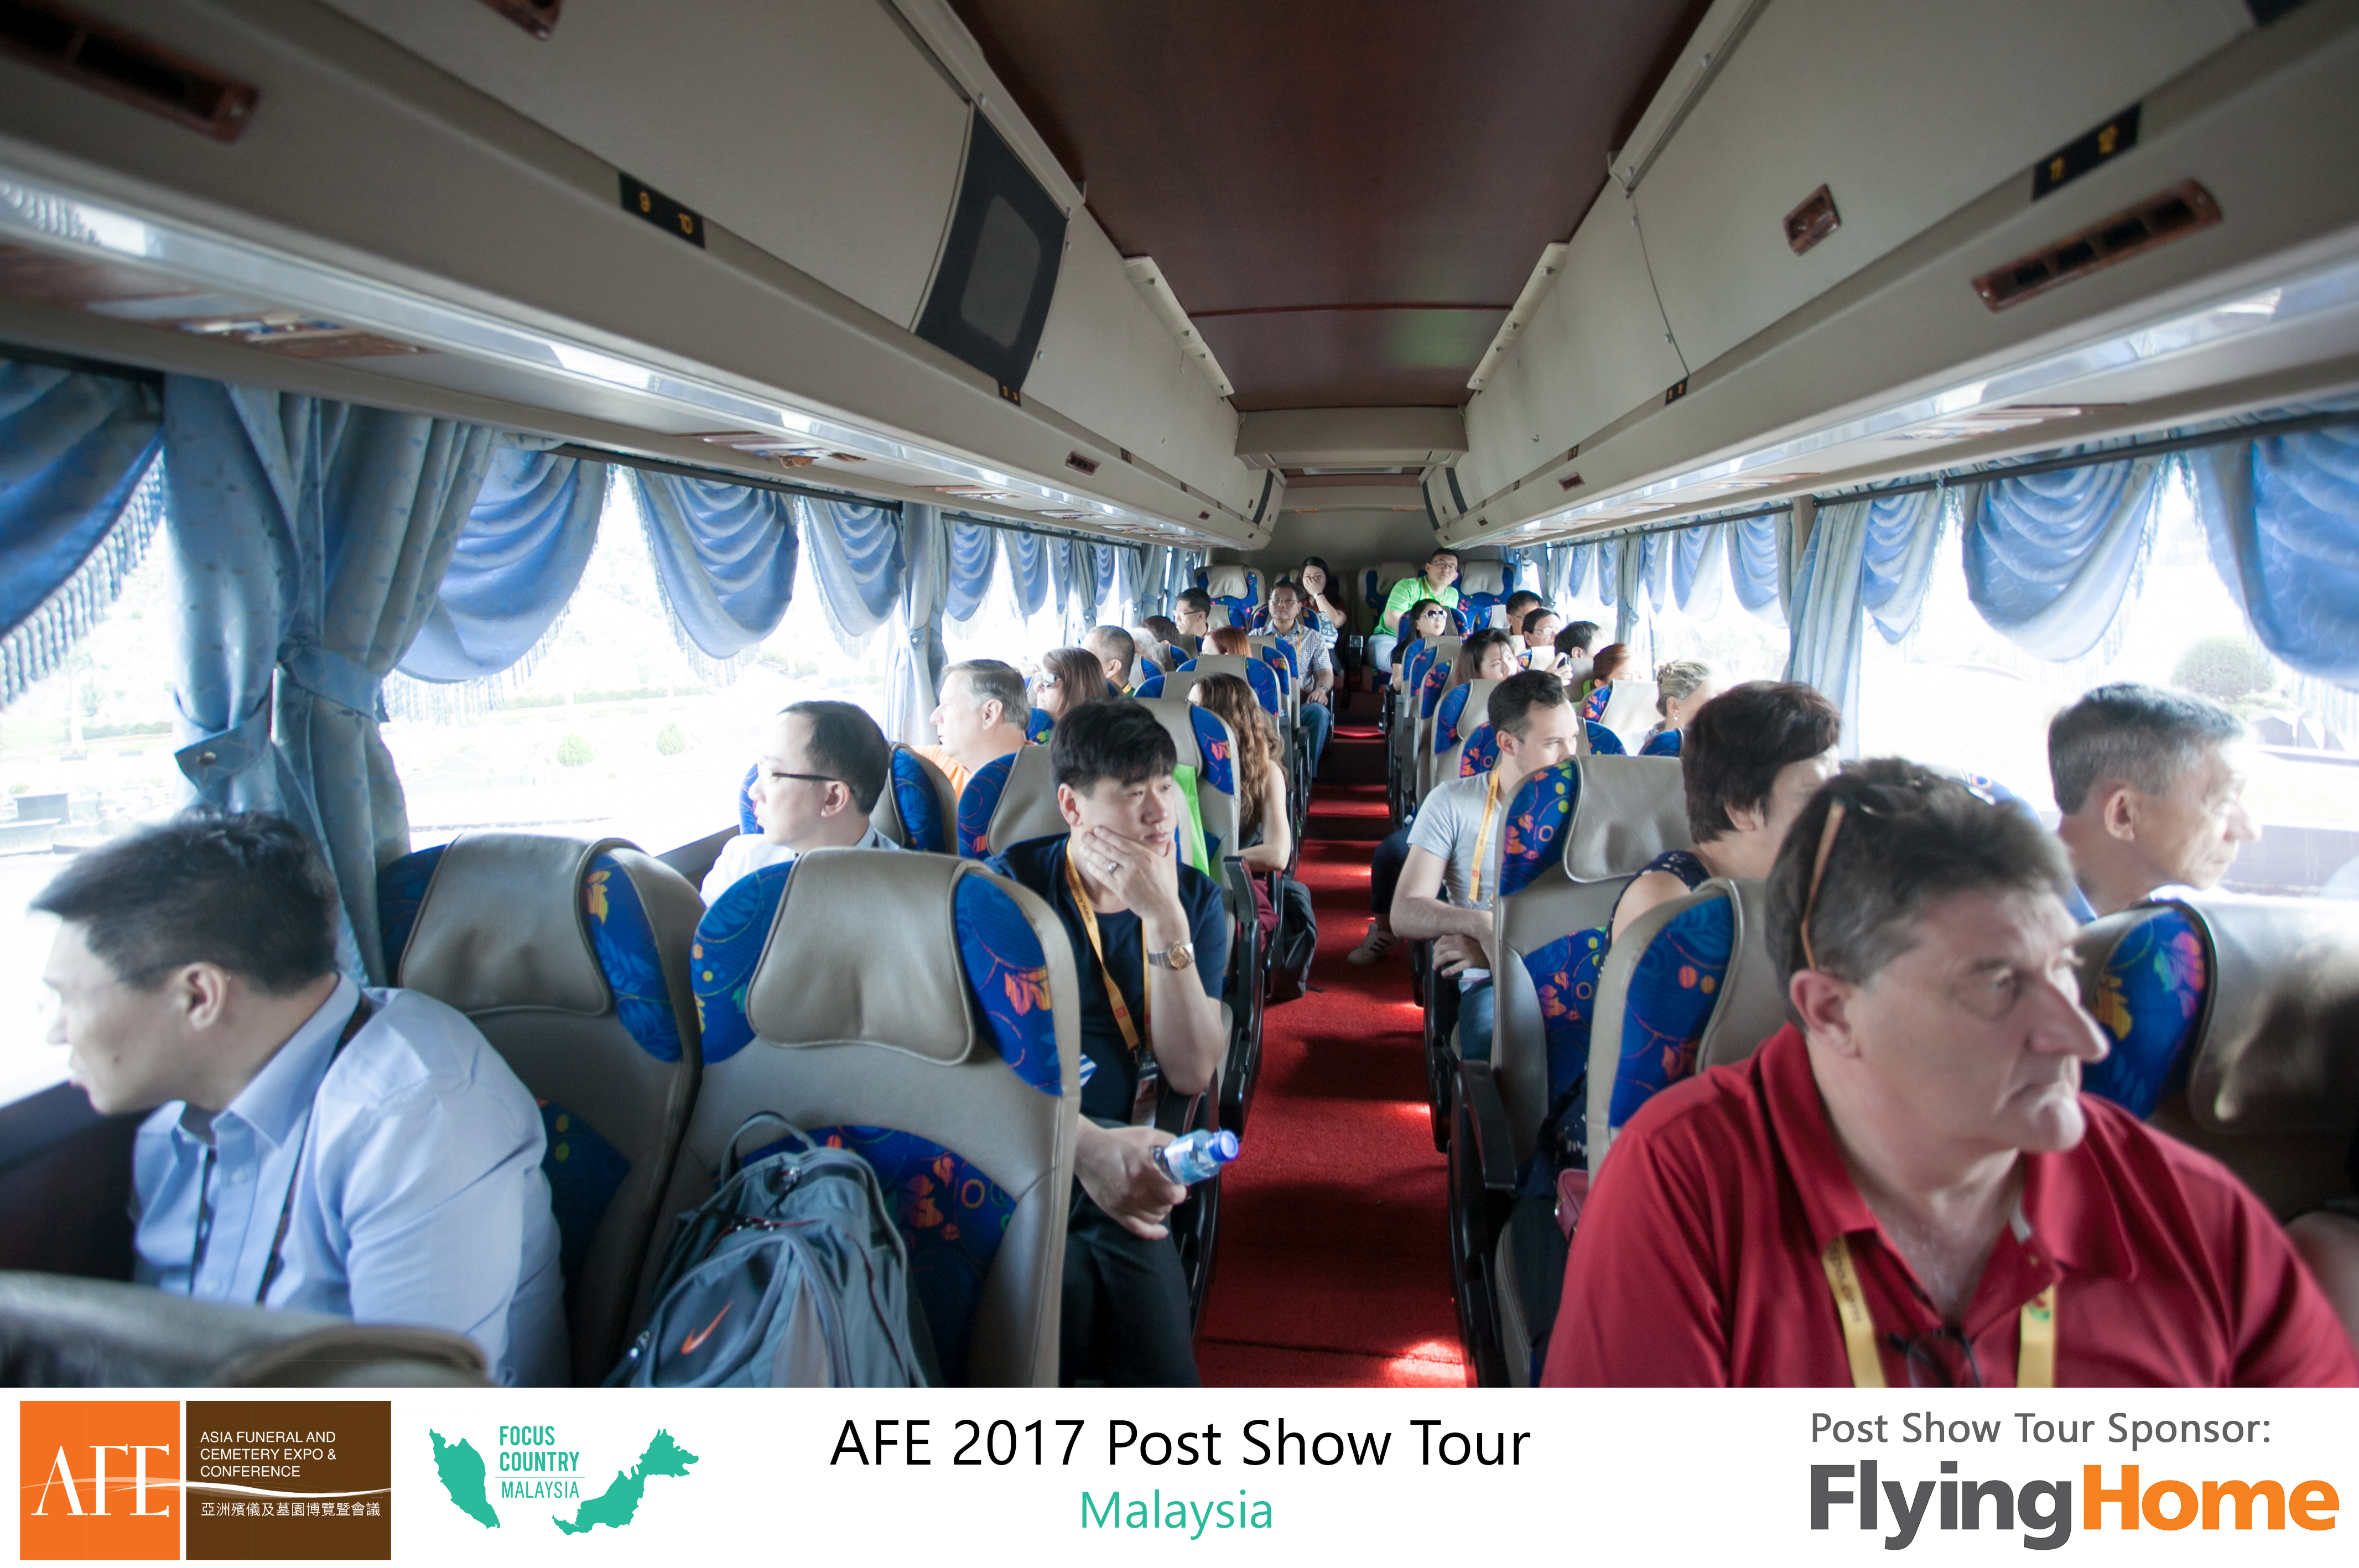 AFE Post Show Tour 2017 Day 4 - 06